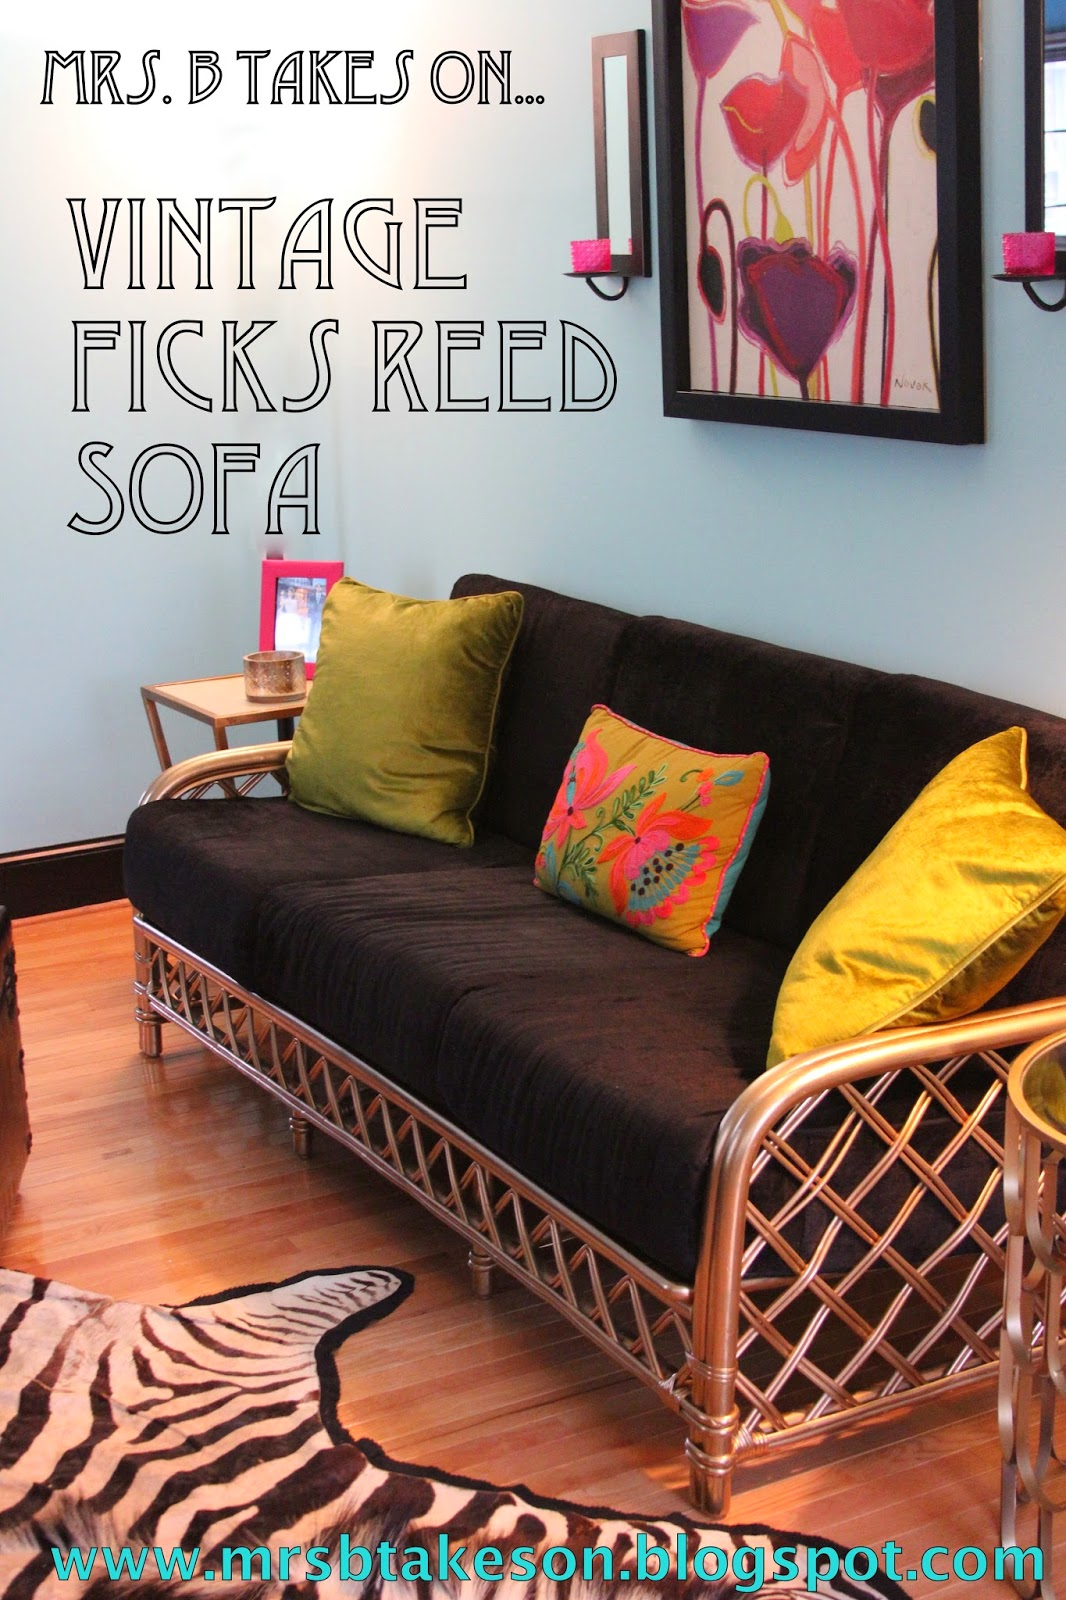 Vintage Ficks Reed Sofa